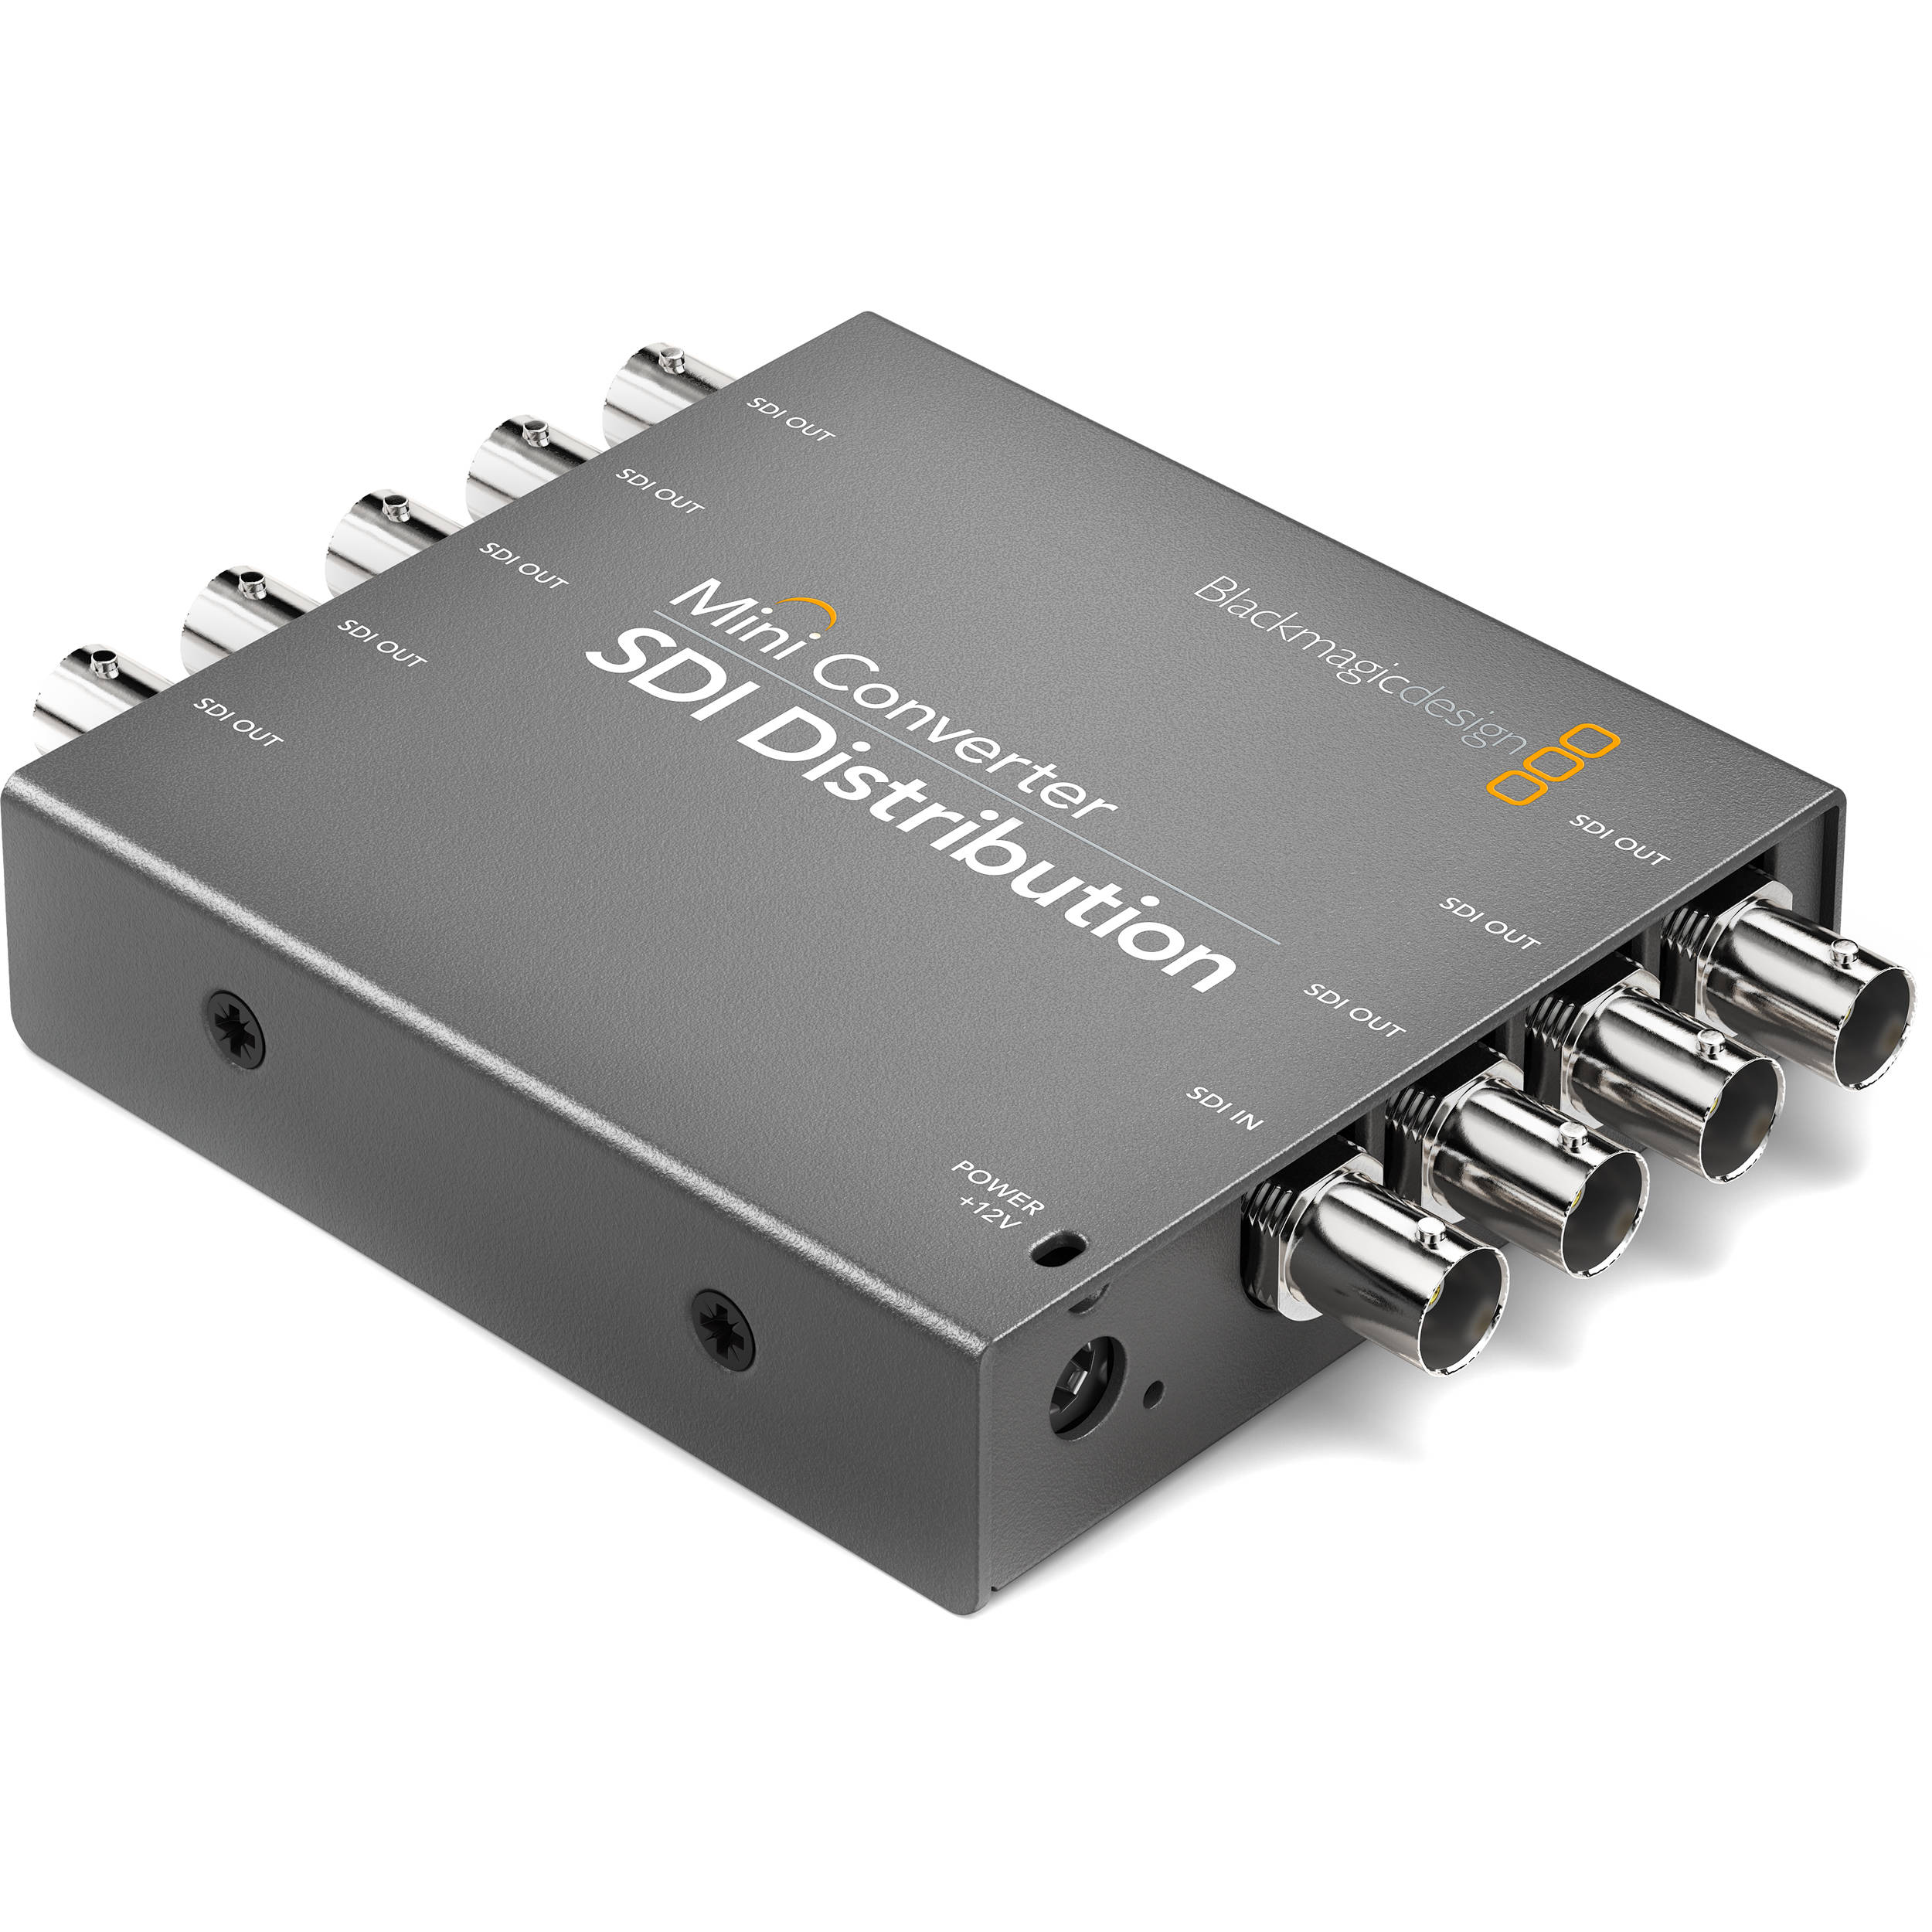 Blackmagic Design Mini Converter Sdi Distribution Convmsdida Bh The Audio Video Amplifier